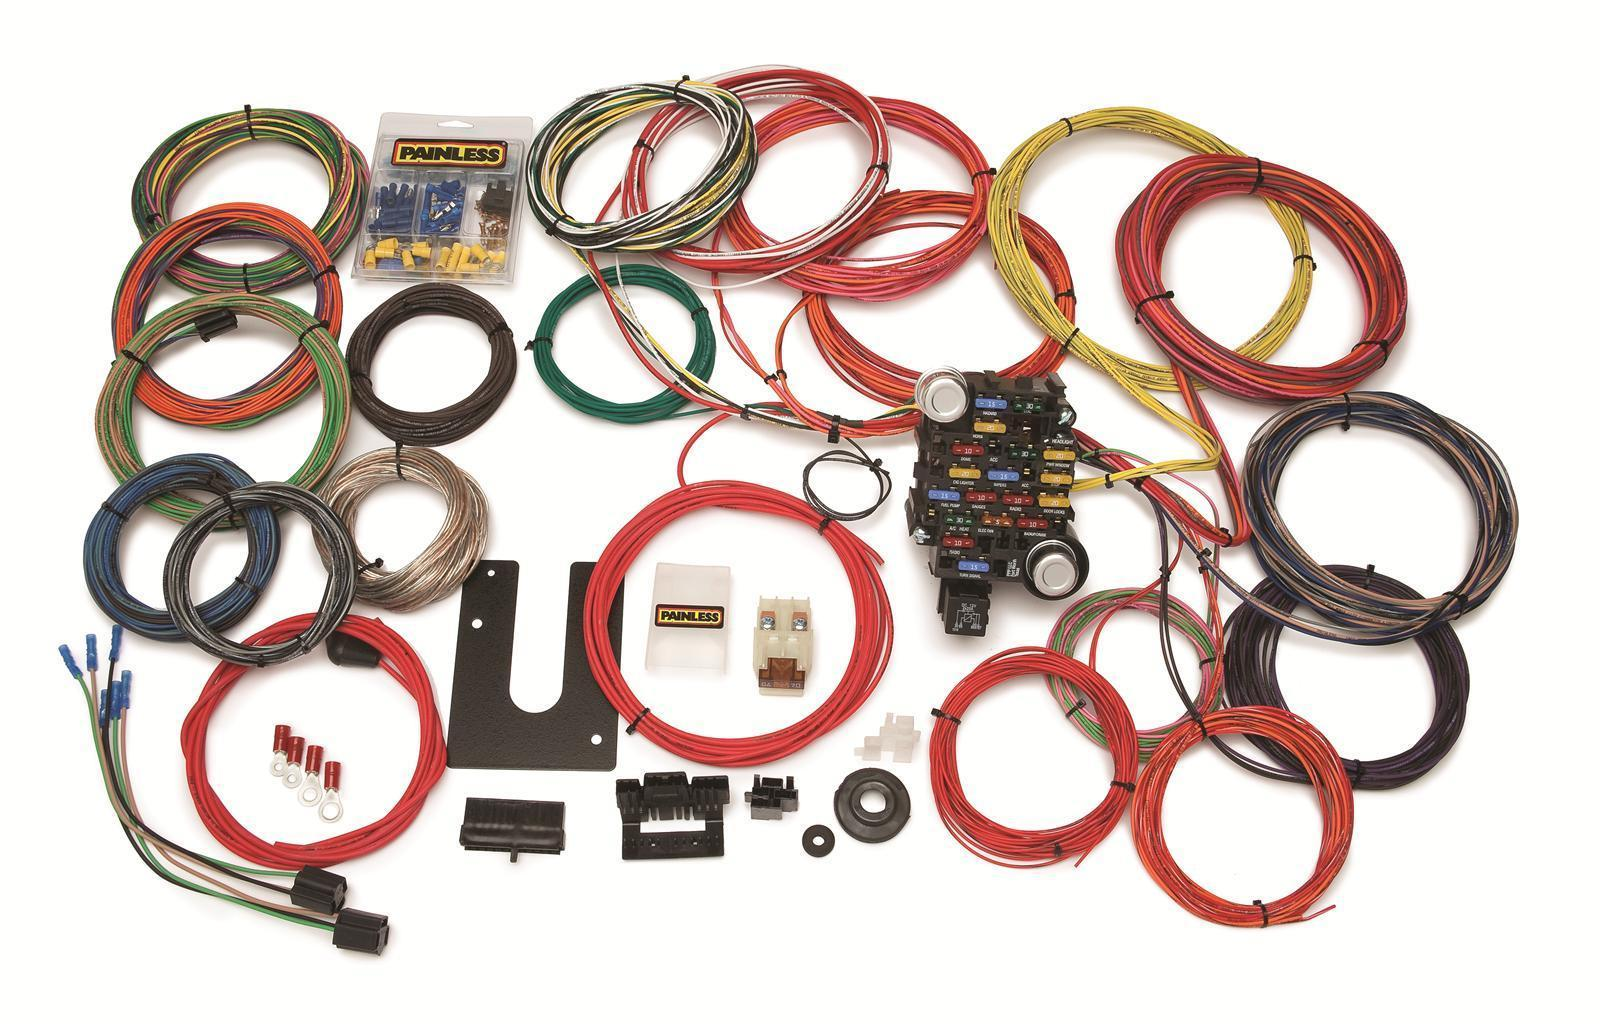 hight resolution of painless wiring 28 circuit wiring harness kit pw10220 universal boot mount